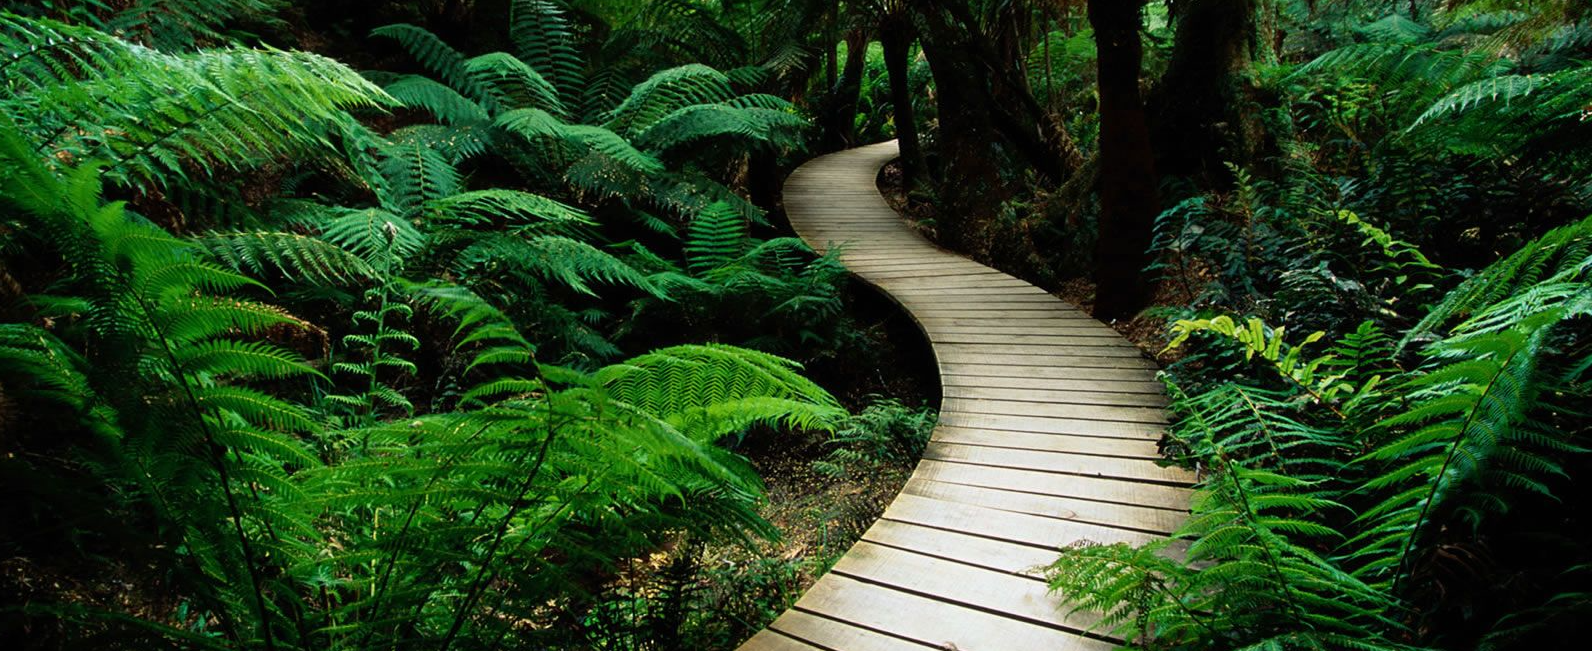 A wooden walkway winding through ferns and trees in a lush green forest.